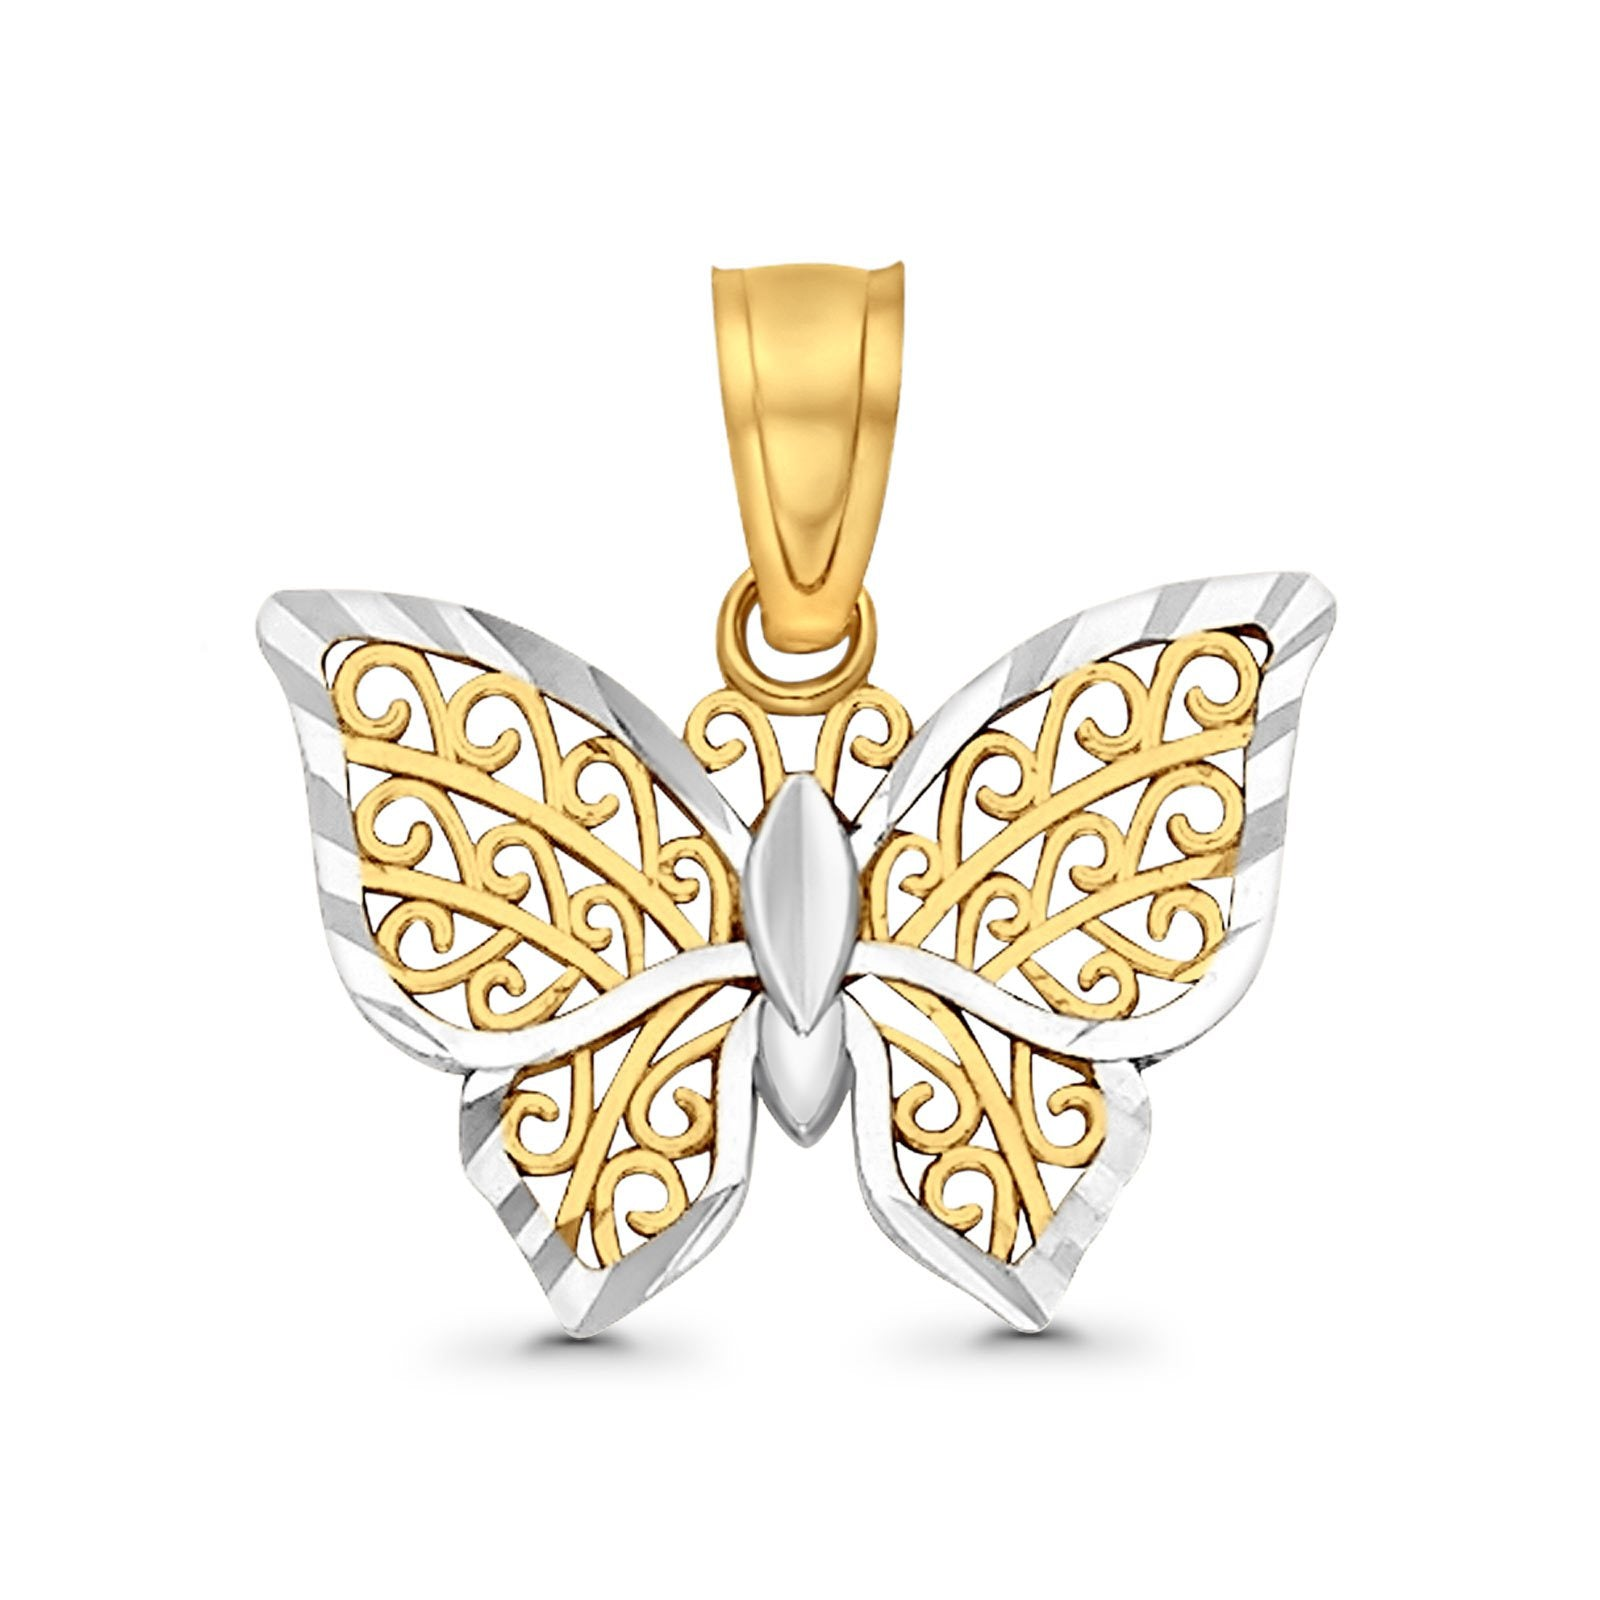 12mmX15mm 14K Real Two Tone Gold Butterfly Charm Pendant 0.6grams